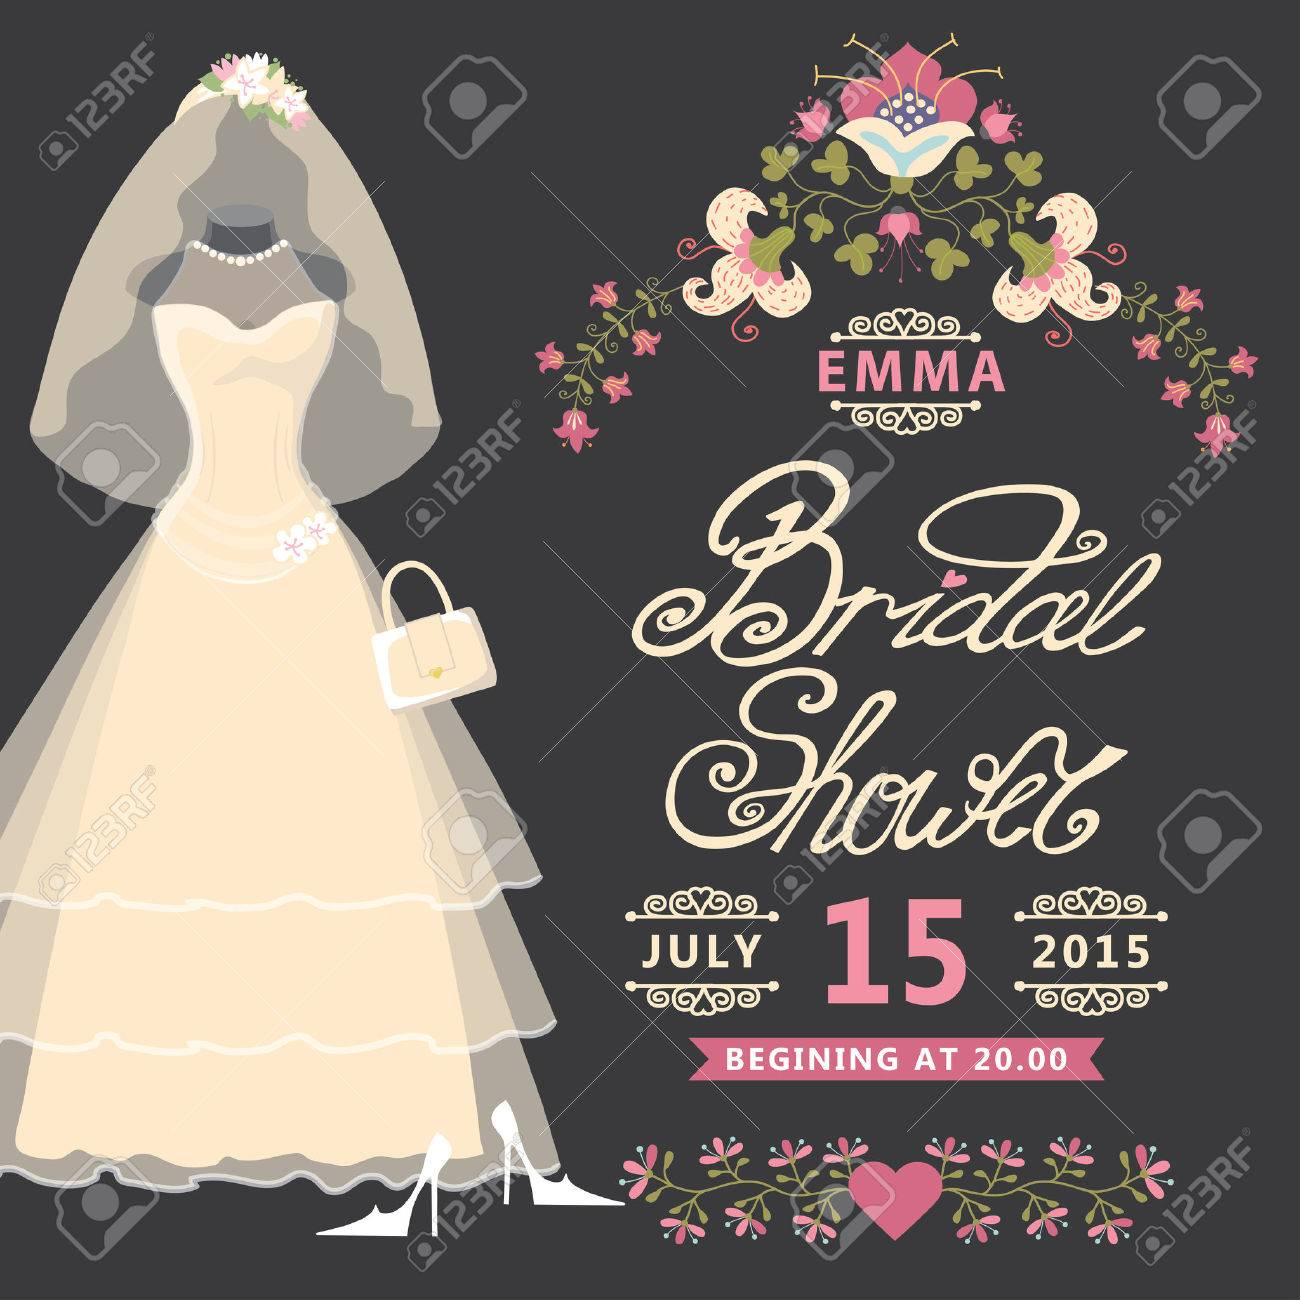 Bridal Shower Invitation Vintage Wedding Dress With Flowers Royalty ...